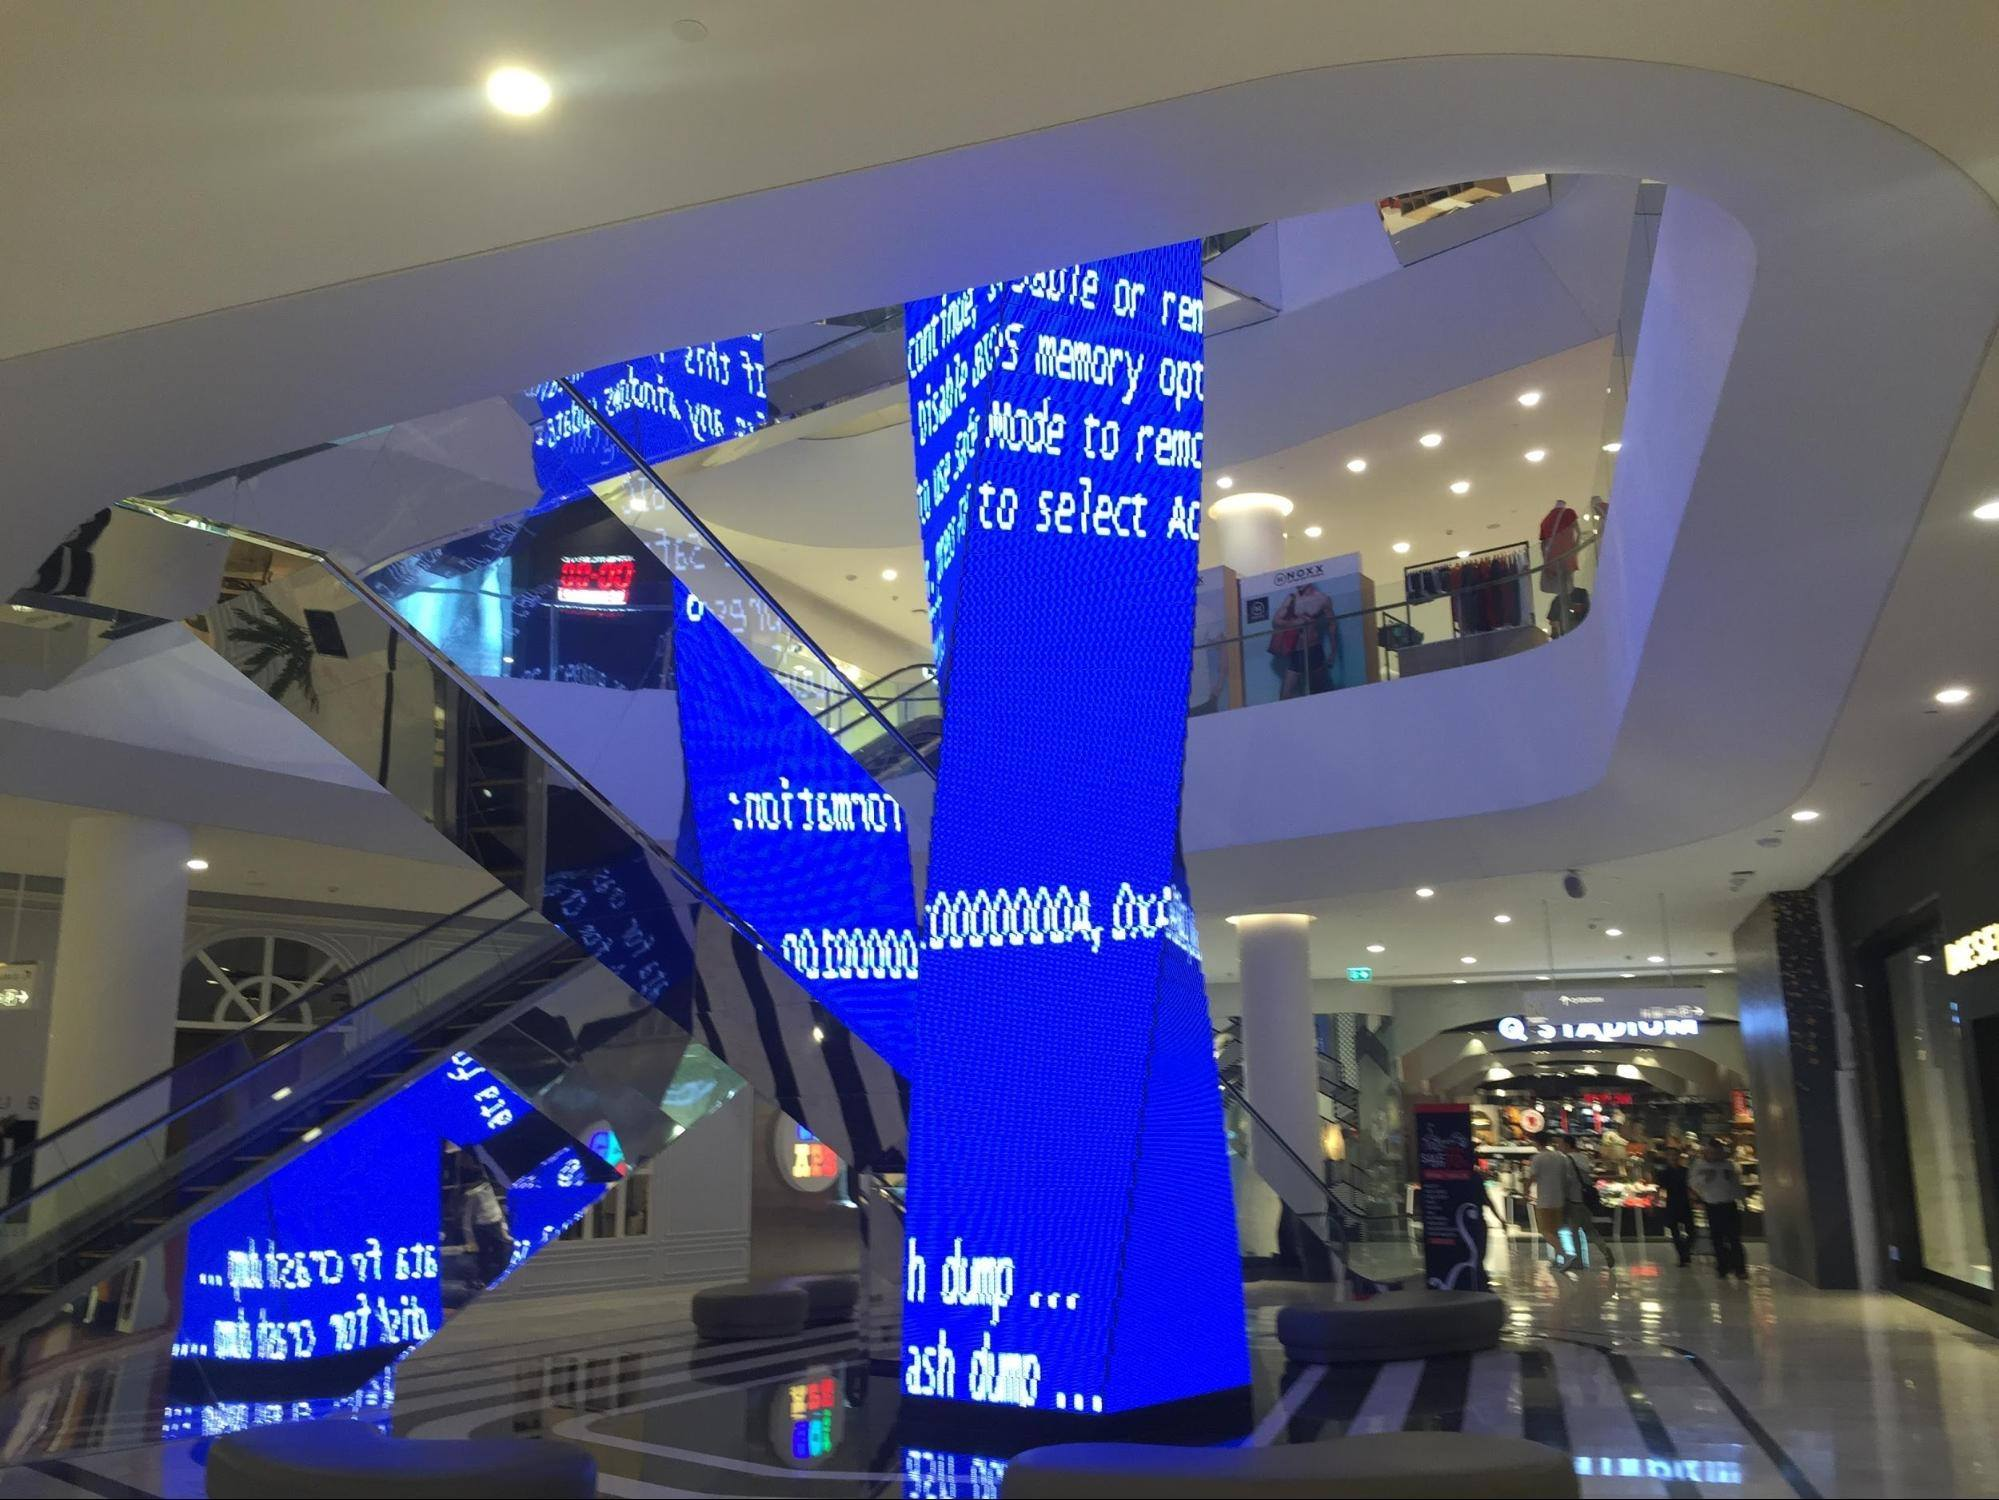 https://www.reddit.com/r/funny/comments/3pn2xp/this_mall_had_a_bsod/